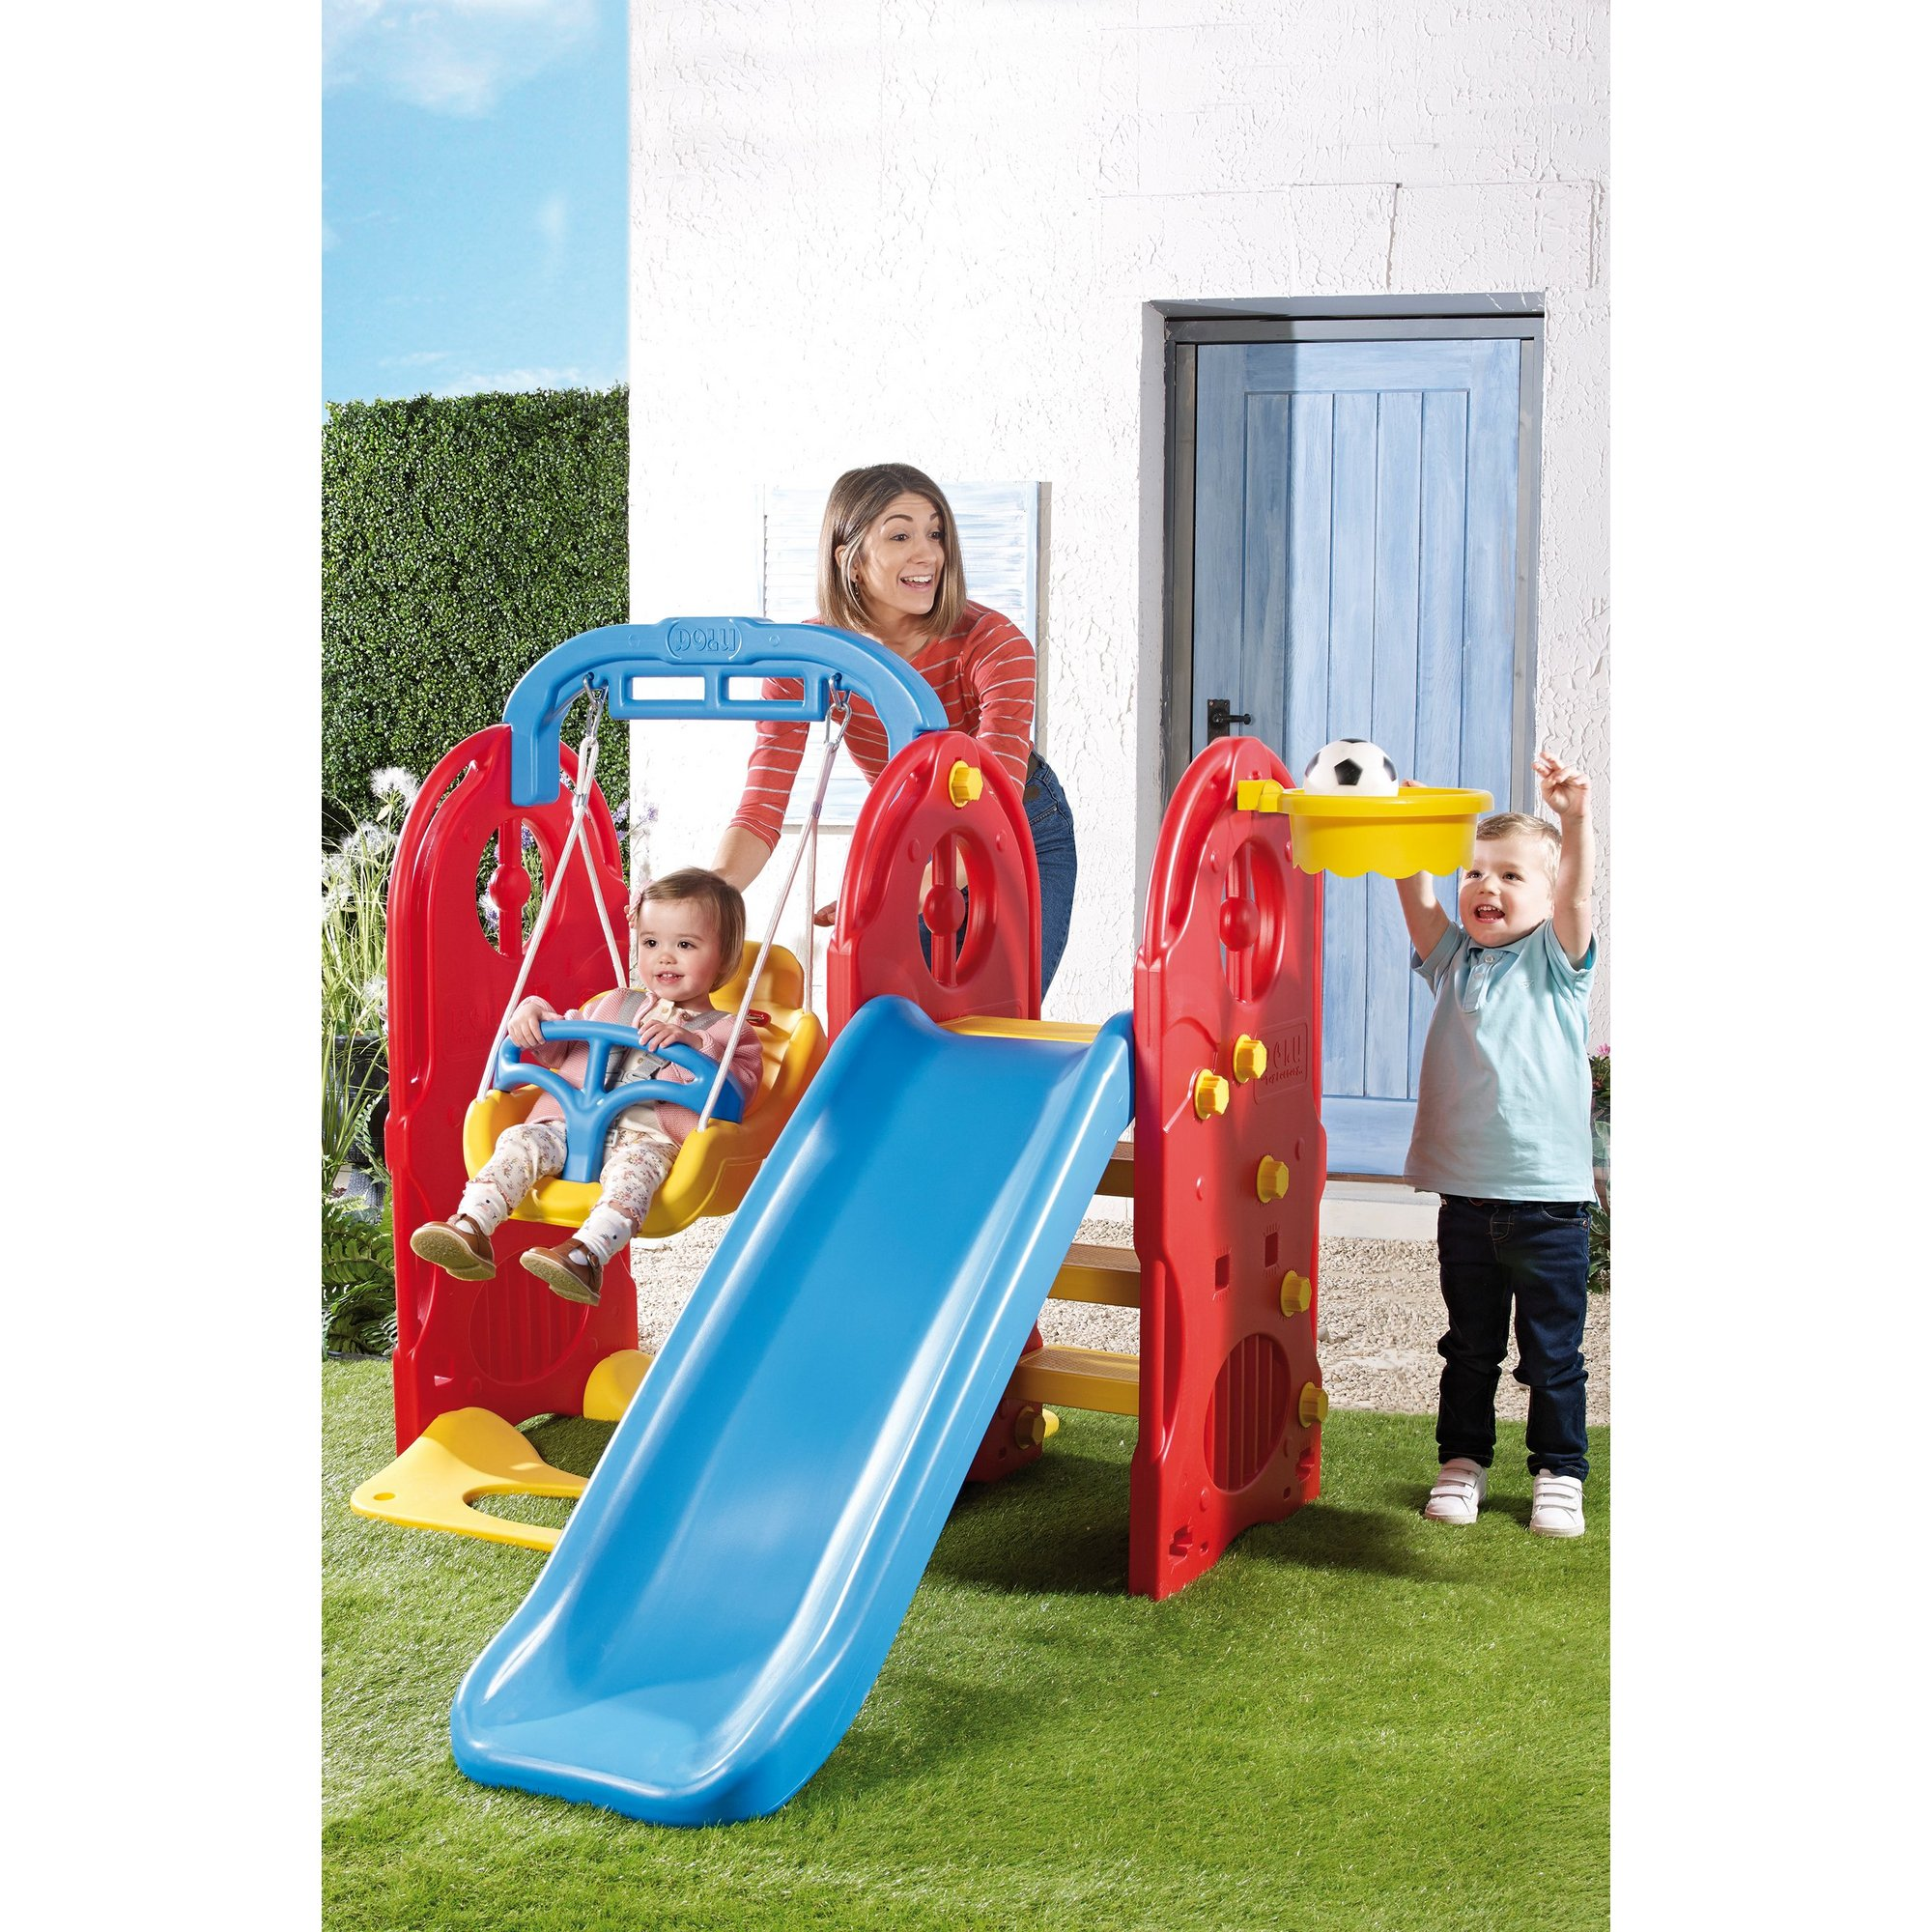 Image of 4 in 1 Playground Set